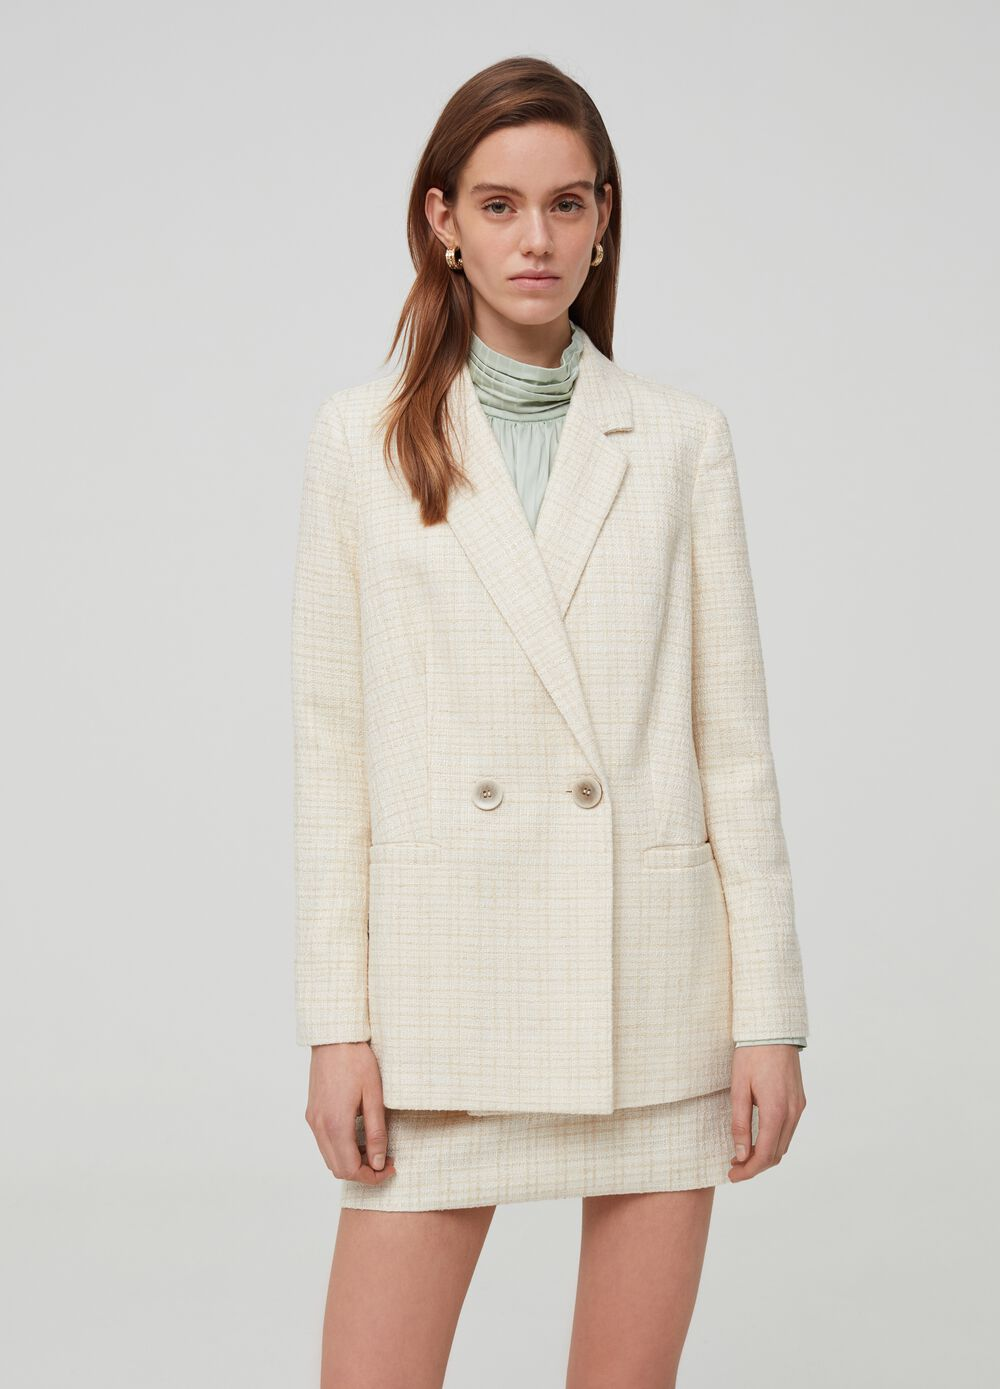 Double-breasted bouclé blazer with lurex